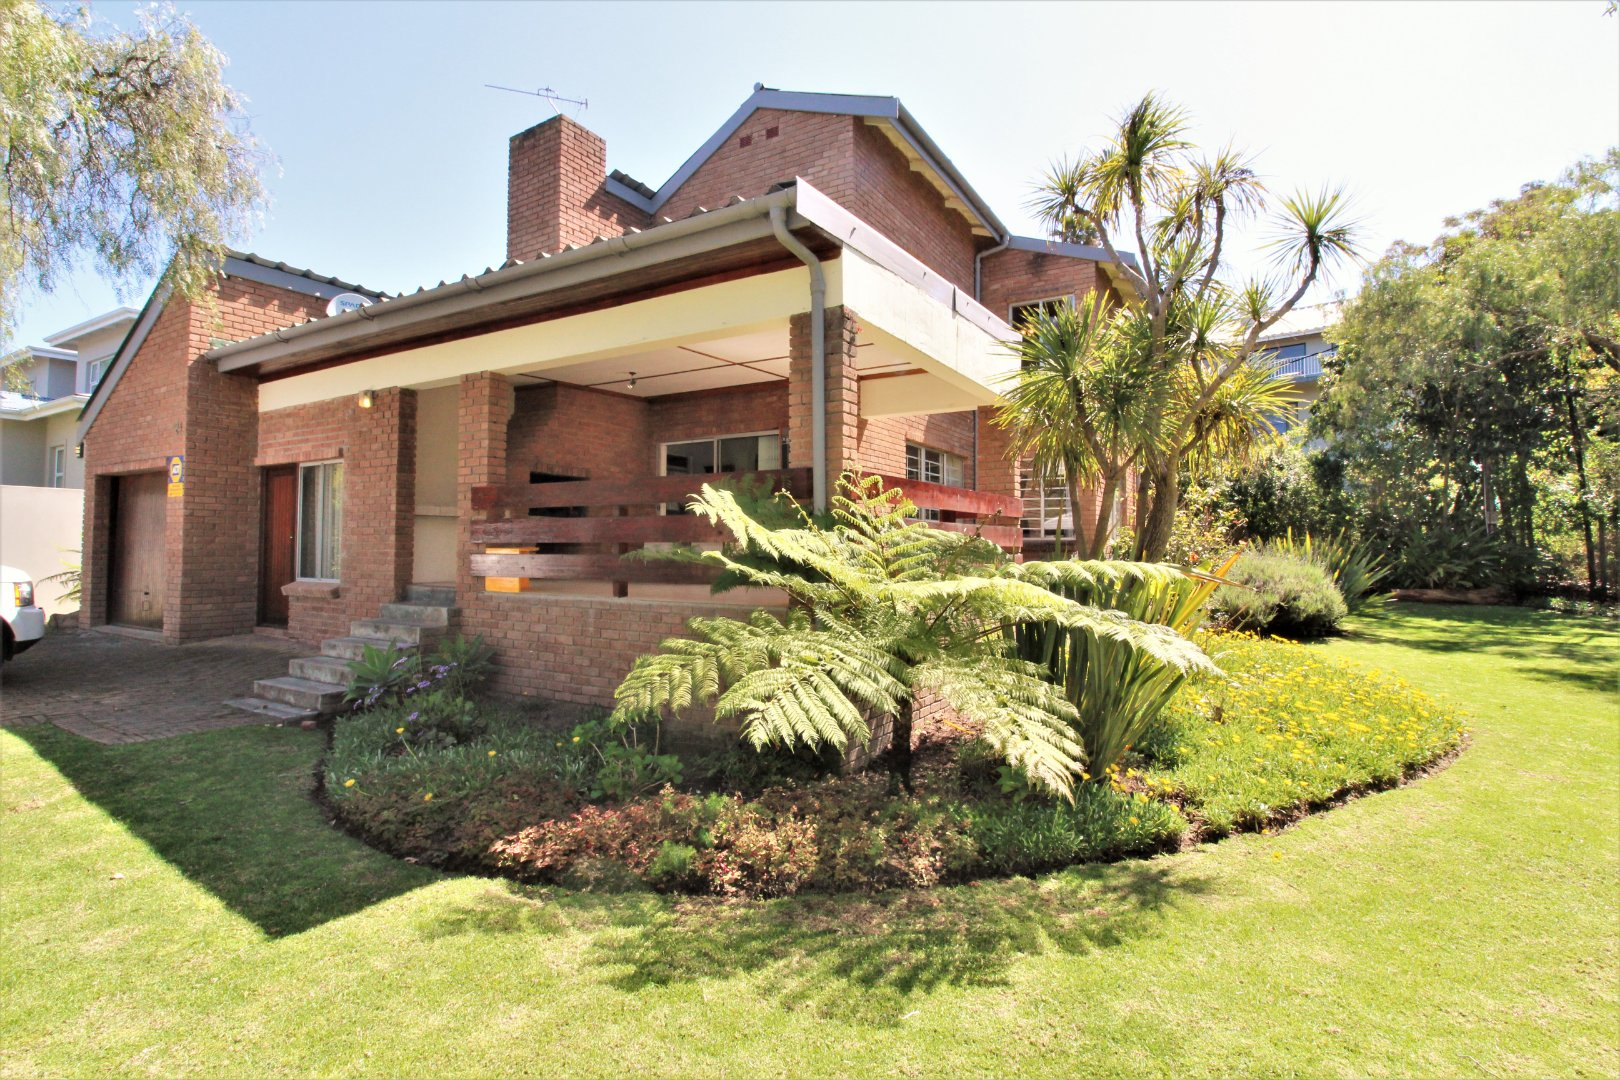 Plettenberg Bay, Poortjies Property  | Houses For Sale Poortjies (Garden Route), Poortjies, House 4 bedrooms property for sale Price:2,700,000